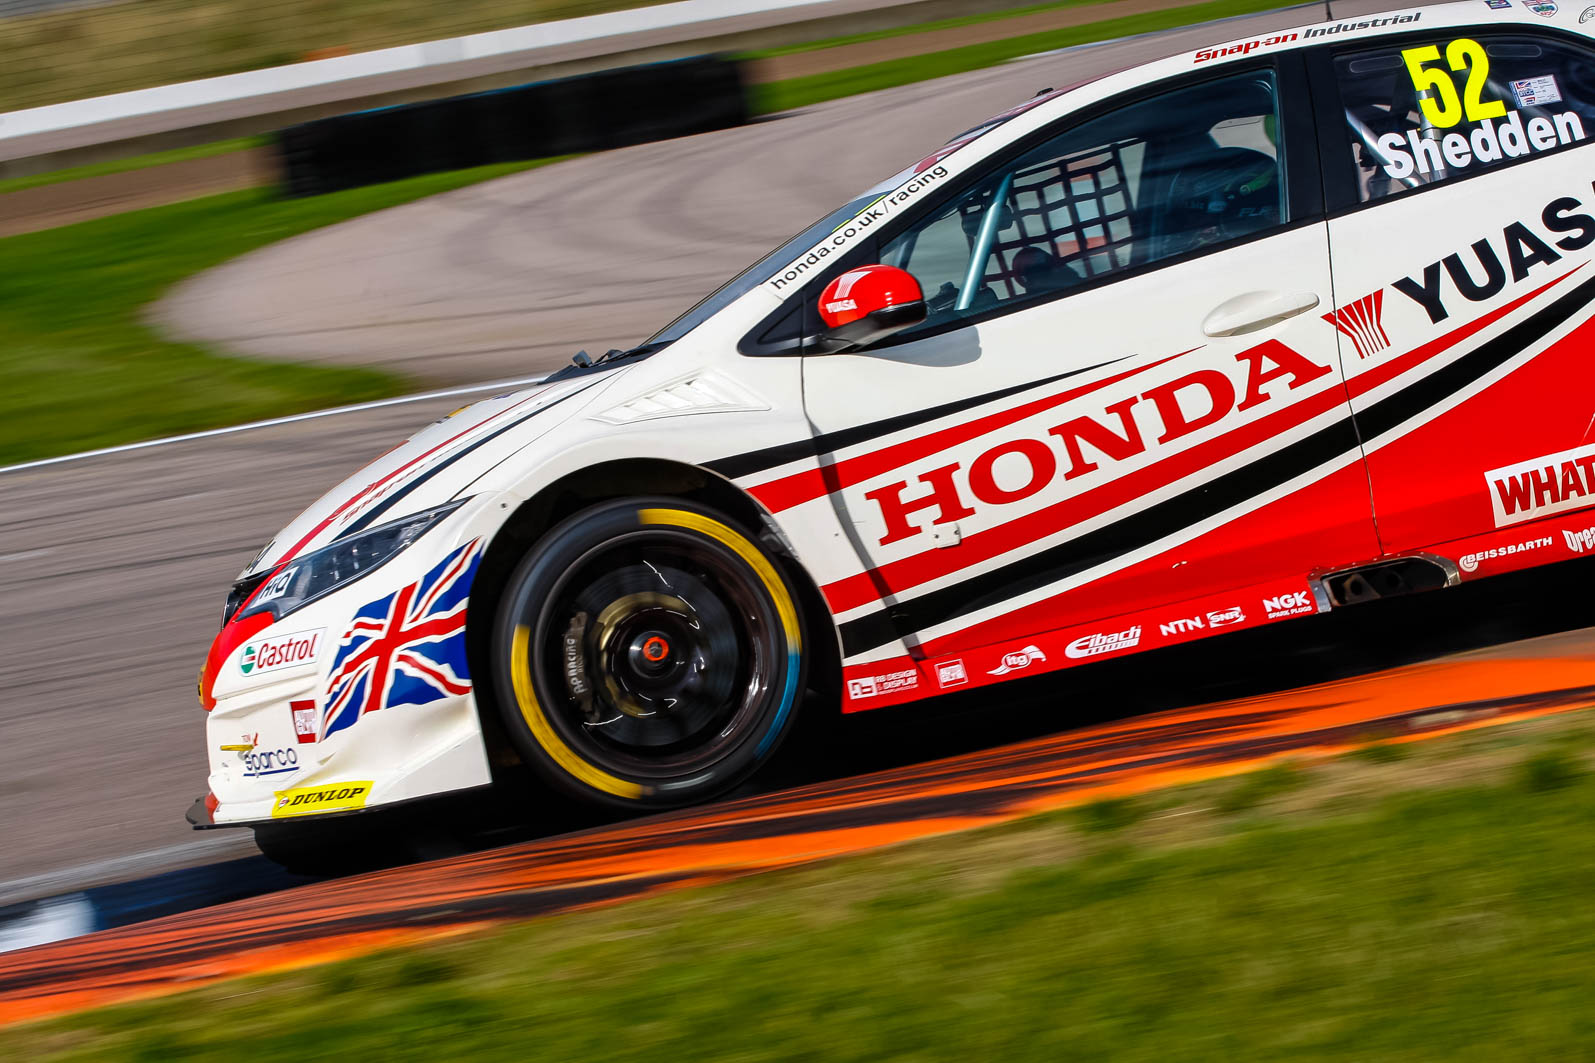 british touring car team honda yuasa racing secures first. Black Bedroom Furniture Sets. Home Design Ideas